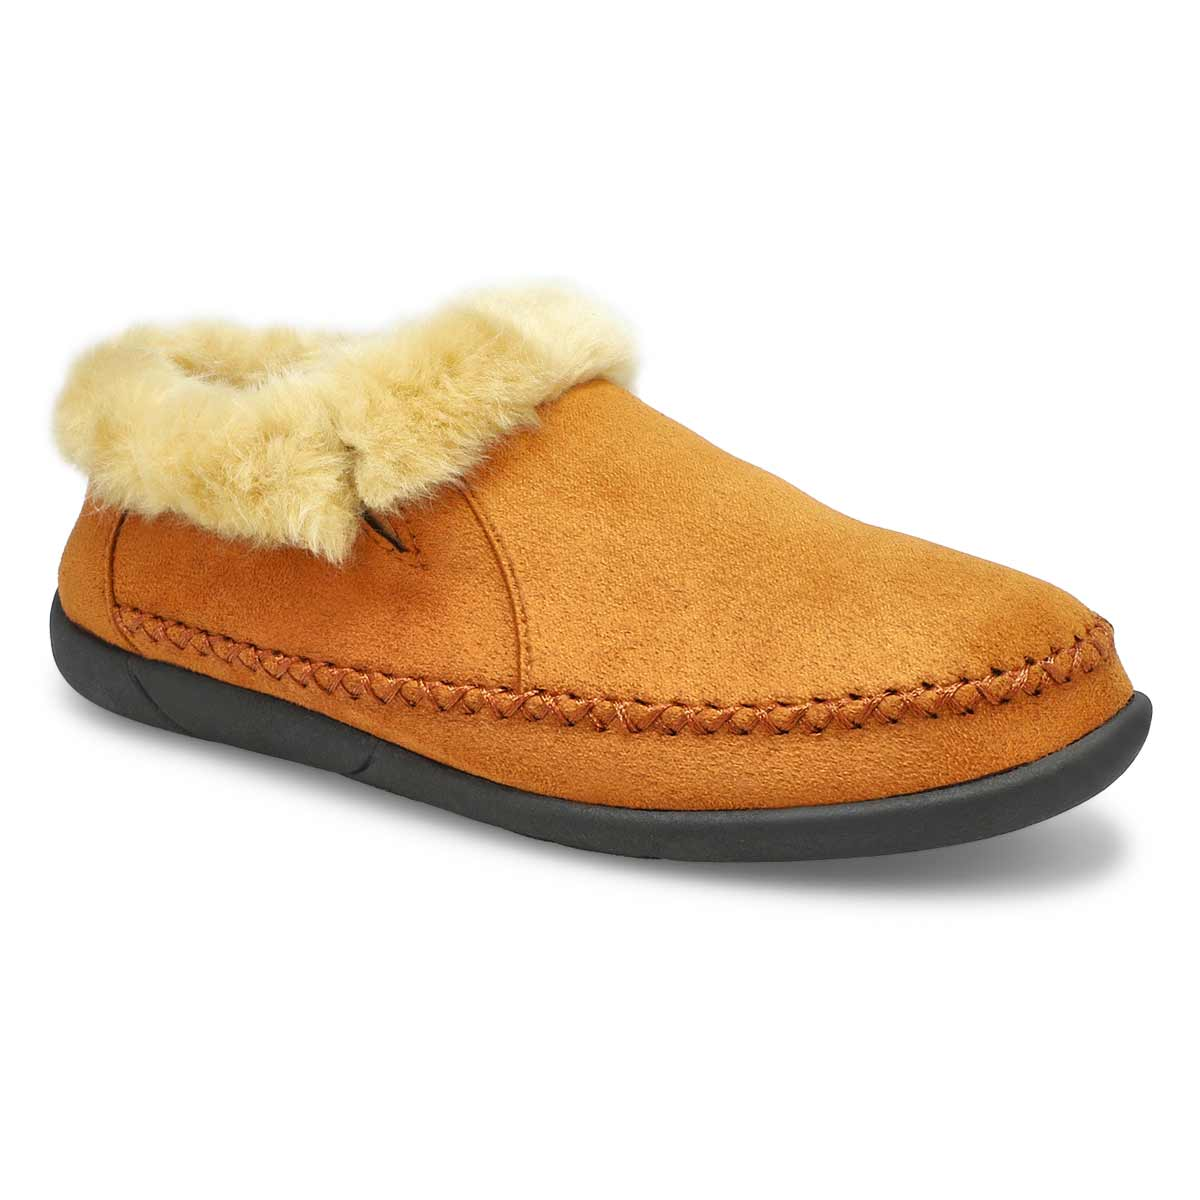 Women's SHAE camel slip on booties